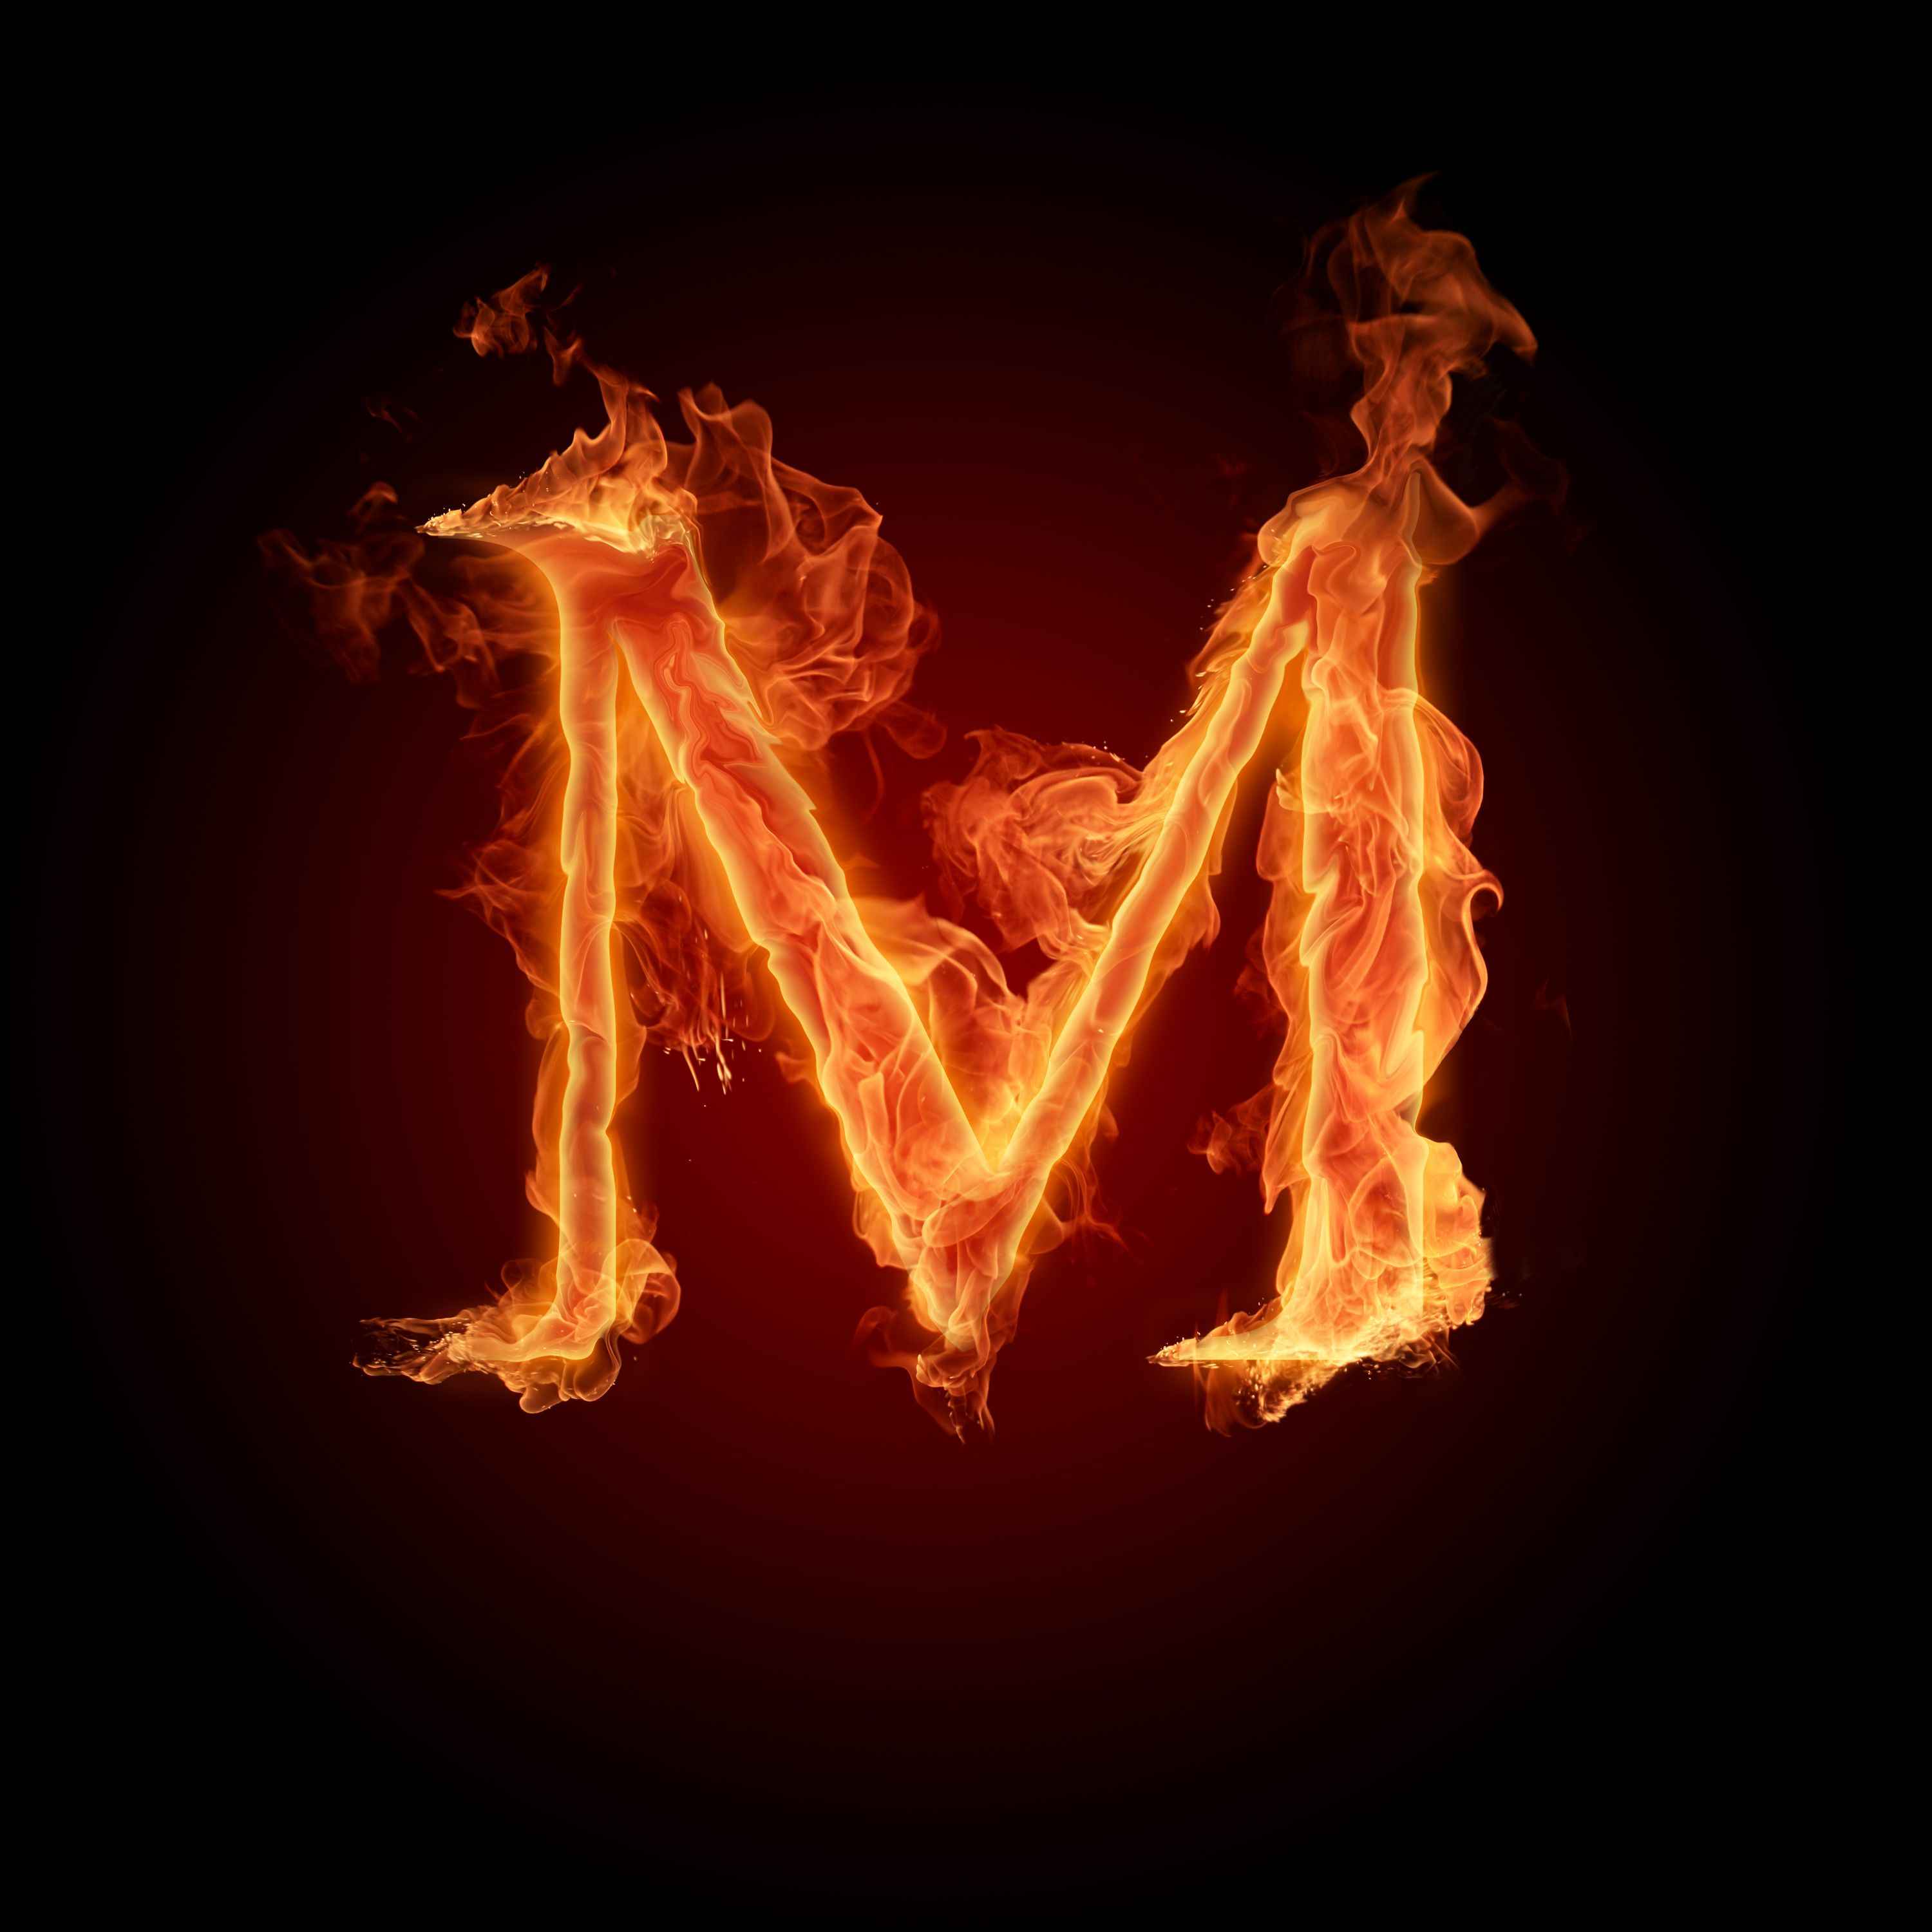 Download M Letter Wallpapers To Your Cell Phone Letter Manoj